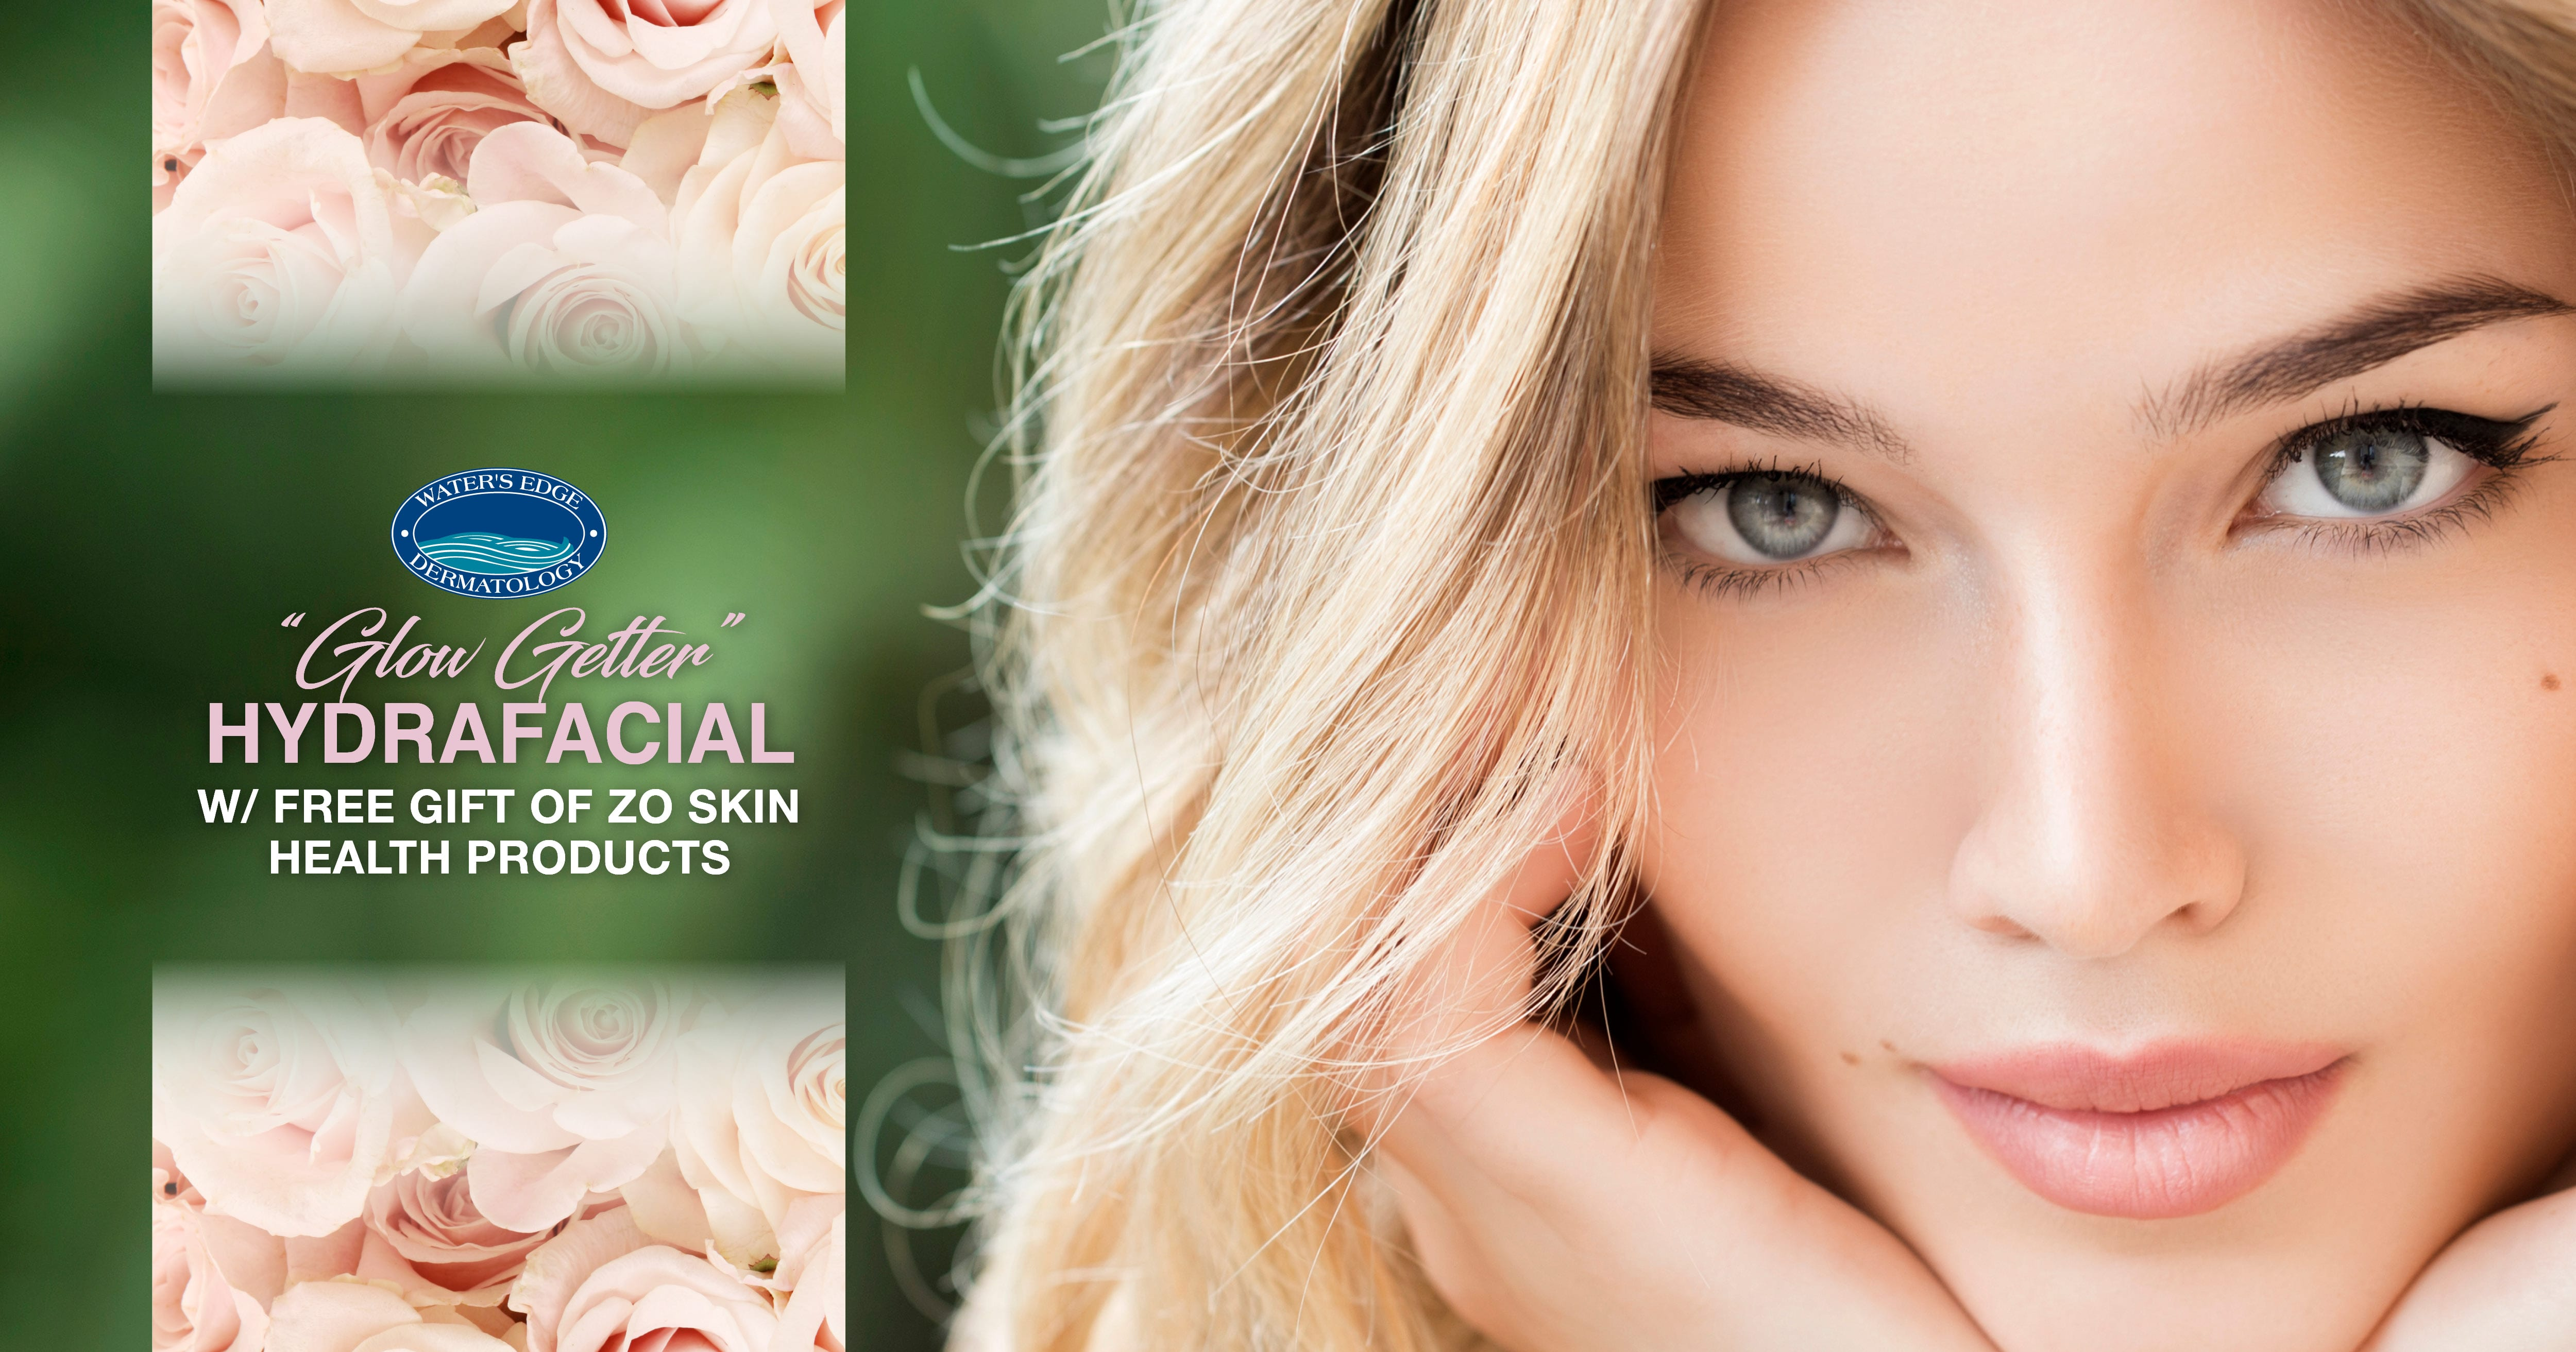 HydraFacial MD – Not Your Grandma's Facial!